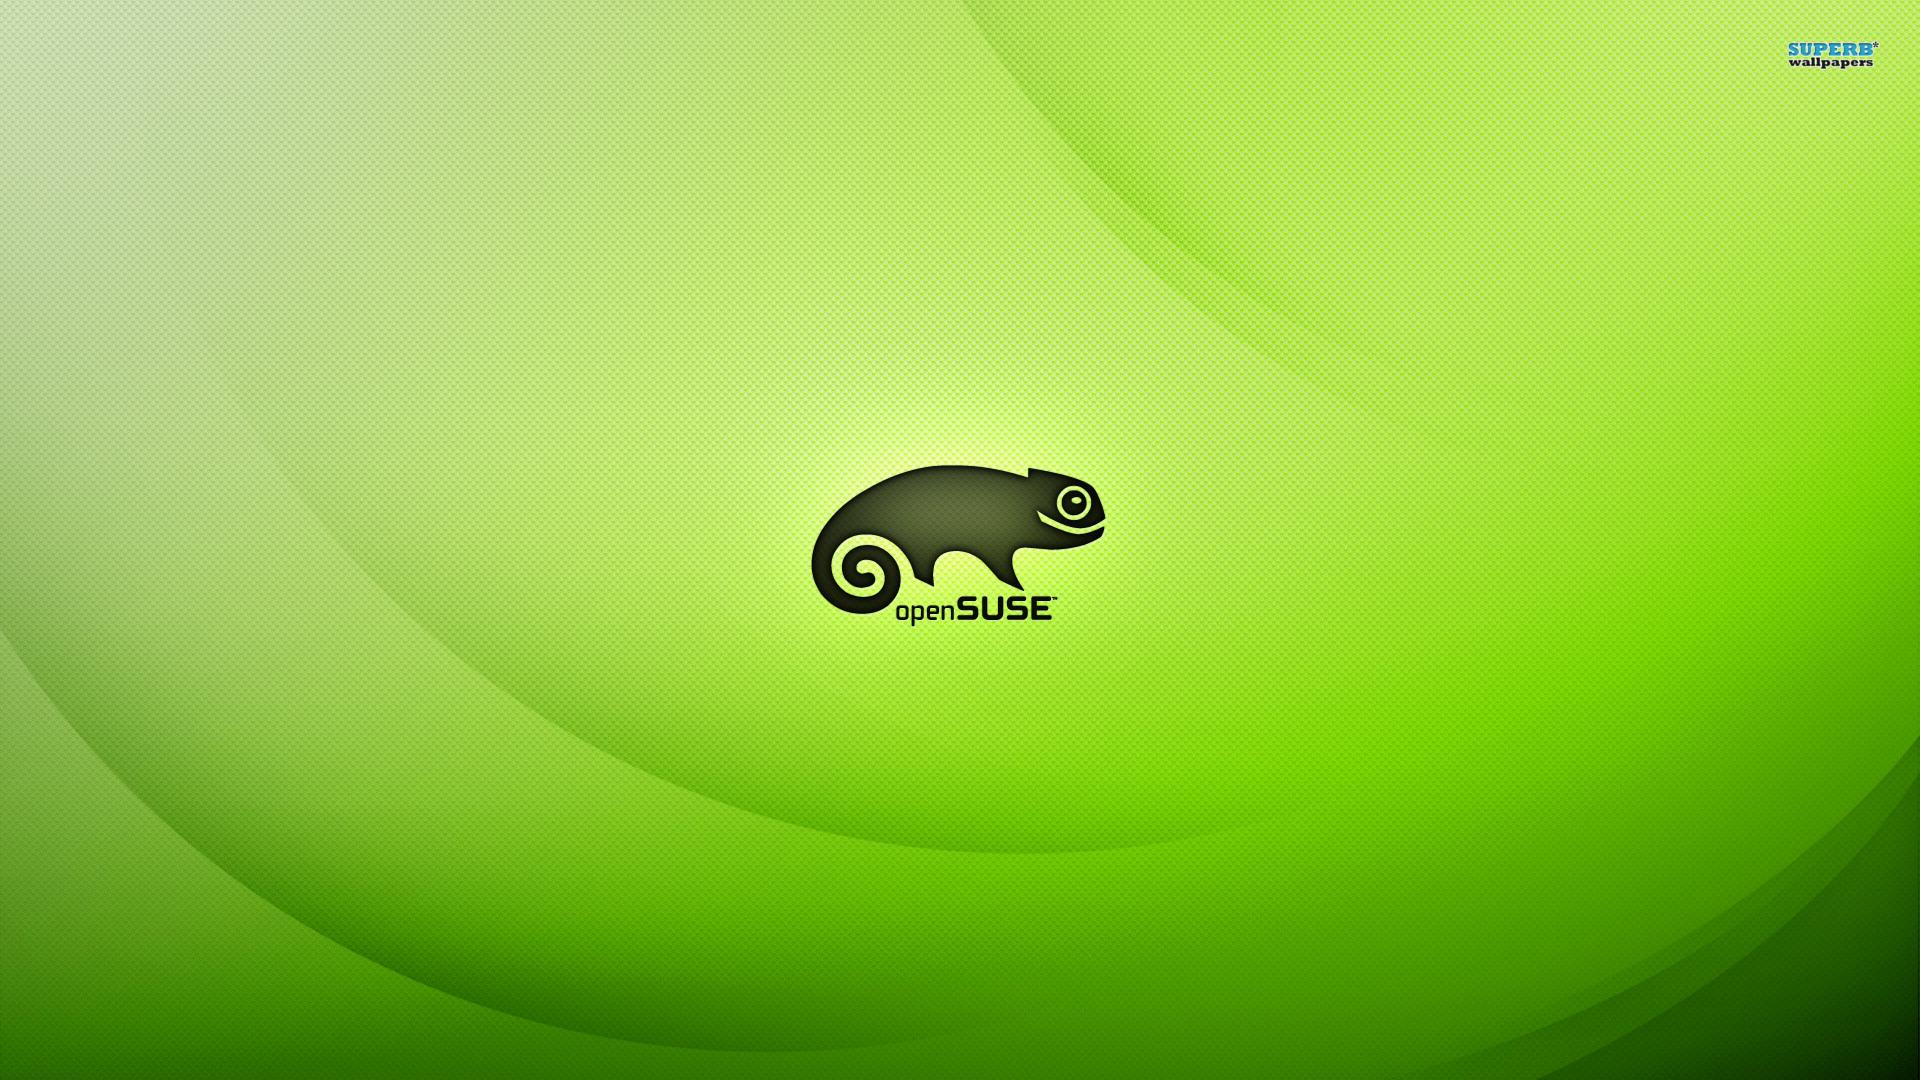 Opensuse Dark Linux Idea Opensuse Wallpaper 1920x1080